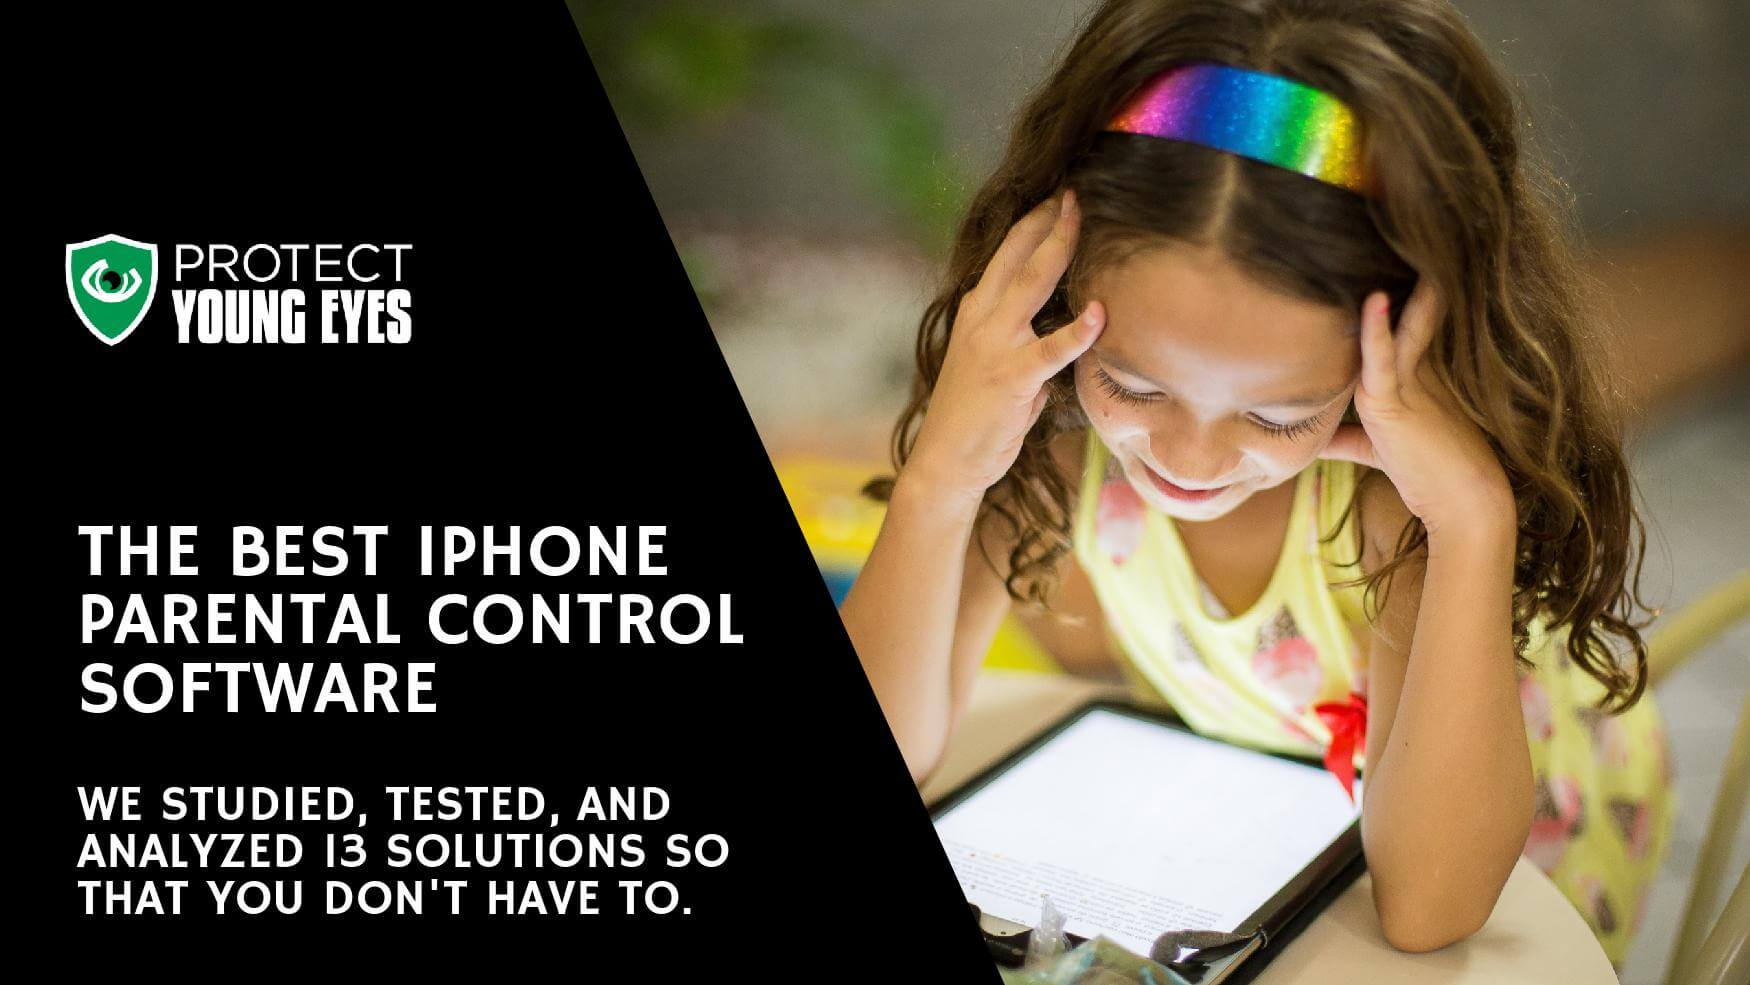 The Best iPhone Parental Control Software